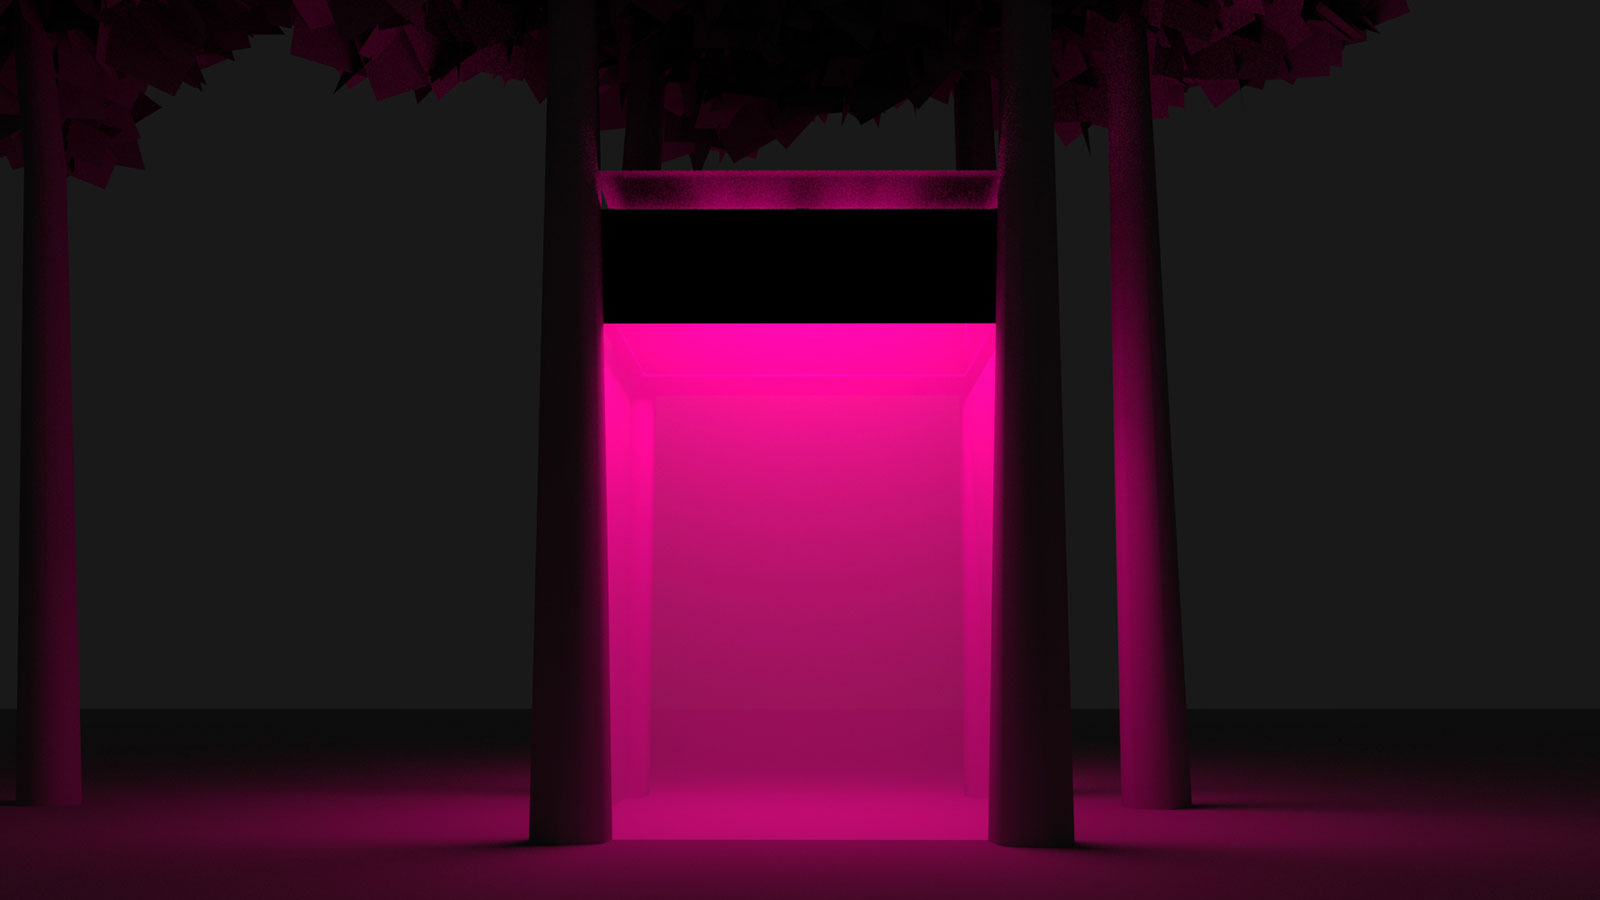 An Uplifting Experience: Maren Hassinger's Pink Light